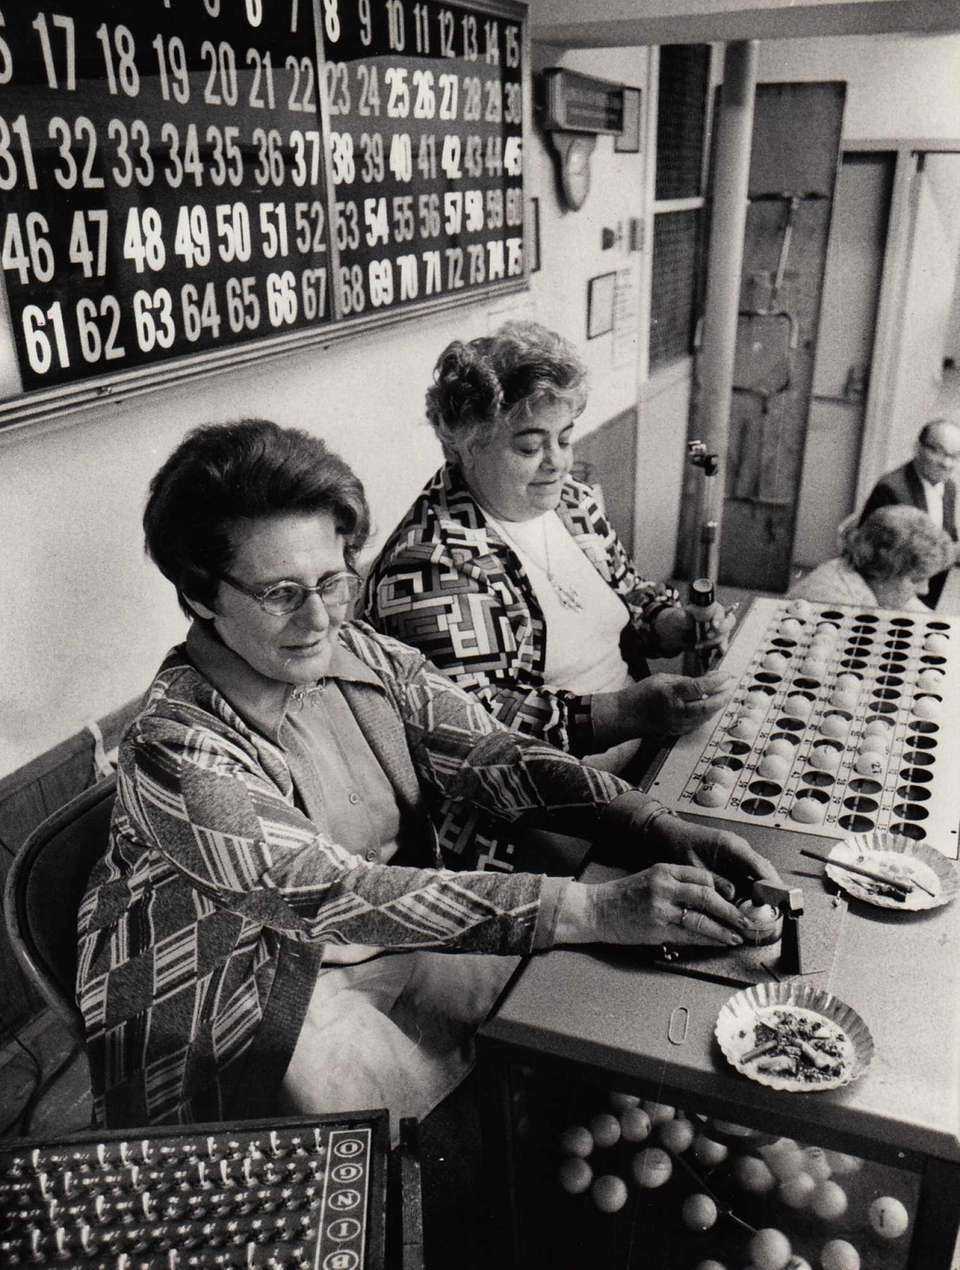 Bingo callers Marge Scott of Jericho and Agnes